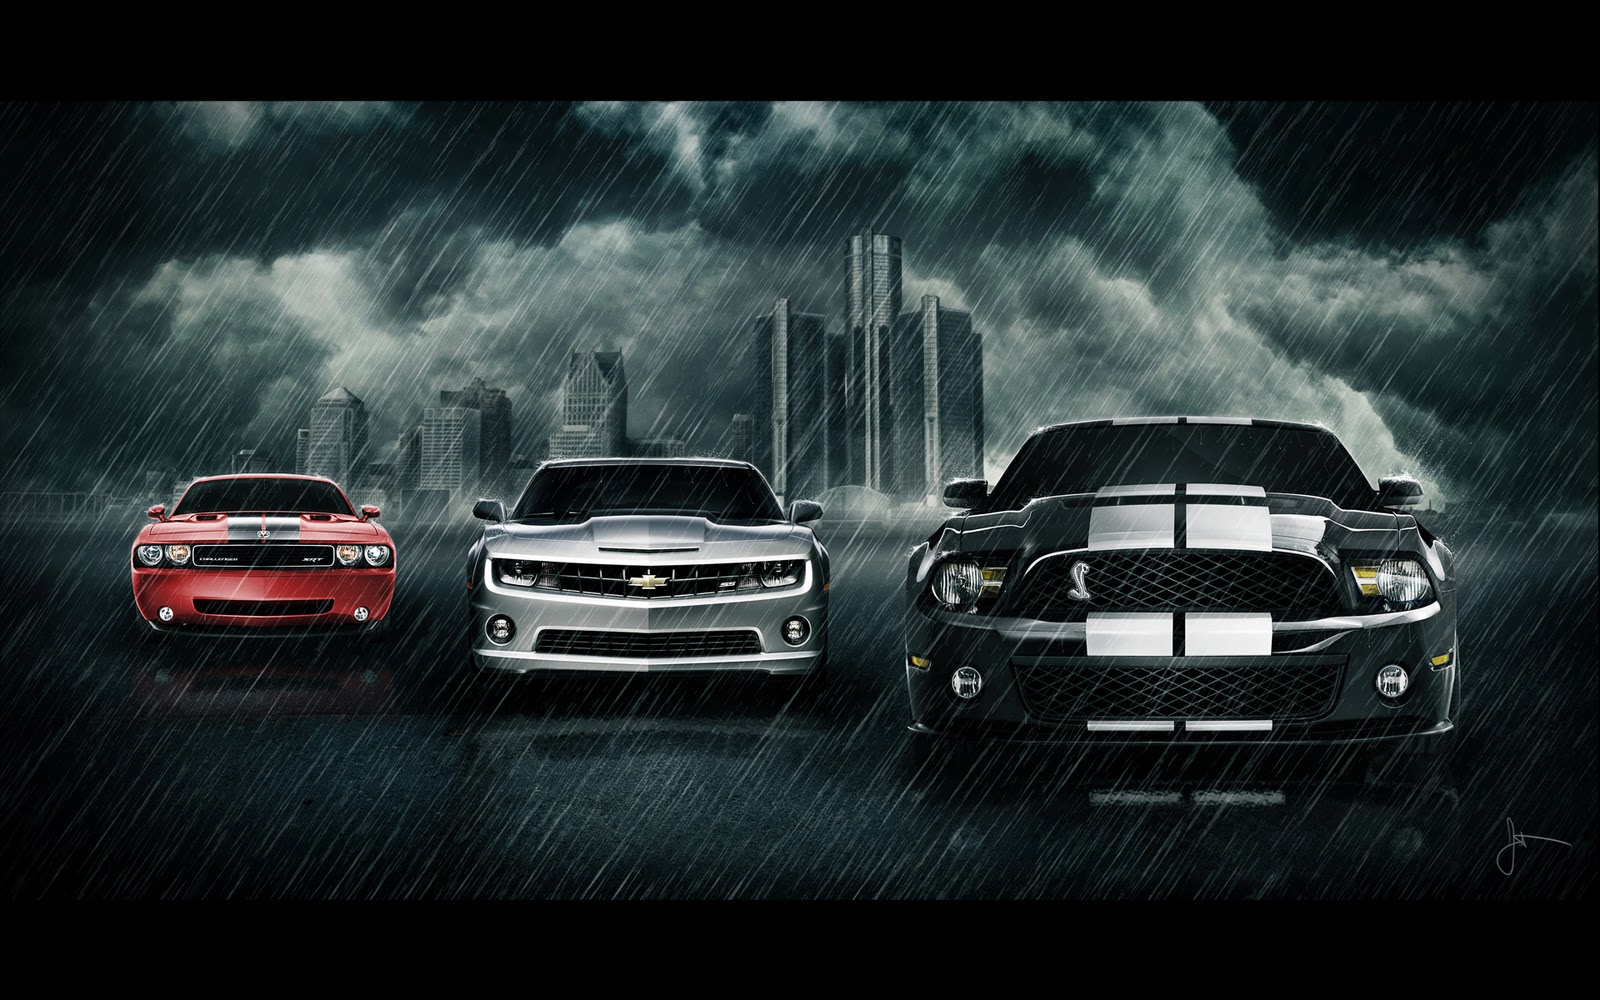 desktop new car pictures wallpapers dowload desktop new car wallpaper 1046